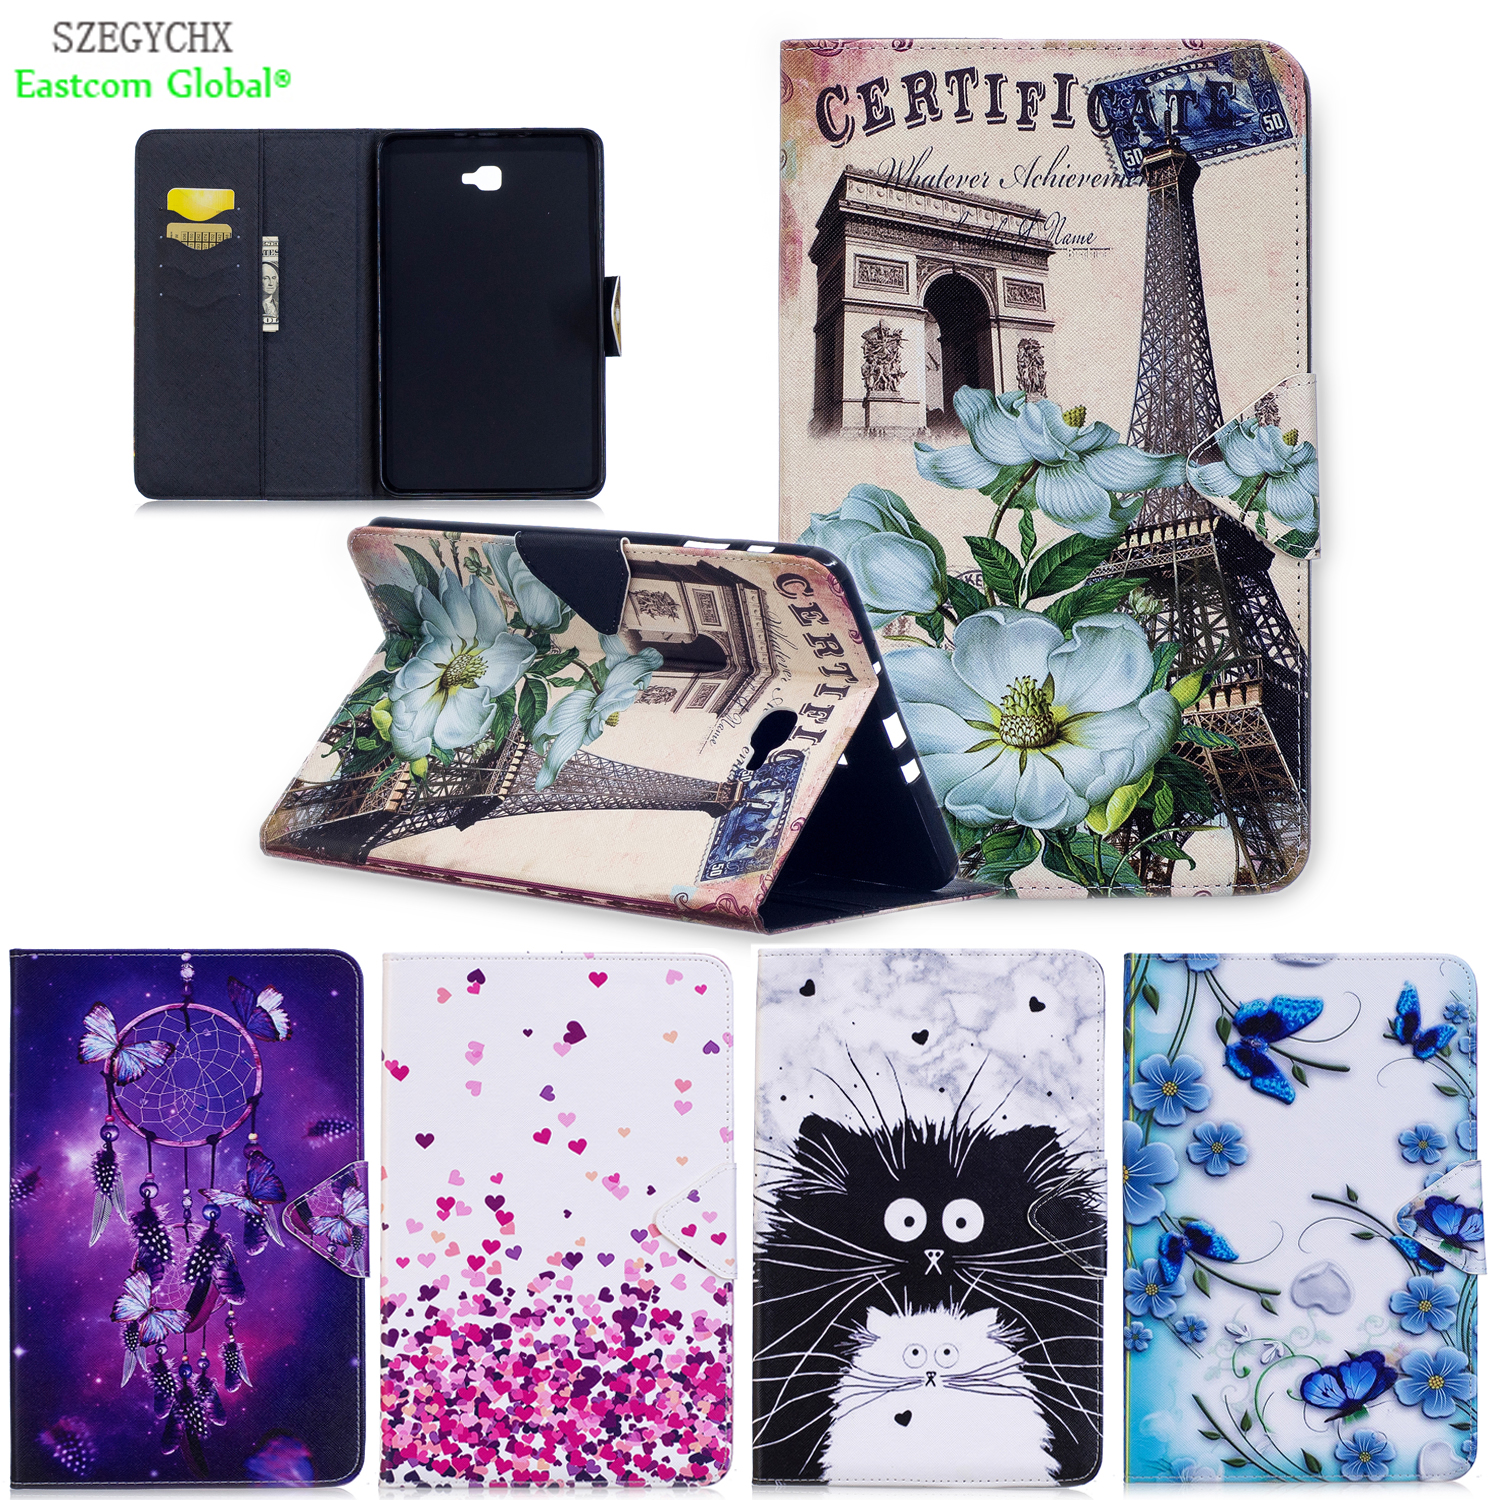 Cover For Samsung Galaxy Tab A 10.1 2016 T580 T585 SM-T585,Cartoon Stand Flip PU Leather Tablet Case For Kids Gift 360 rotary flip open pu case w stand for 10 5 samsung galaxy tab s t805 white